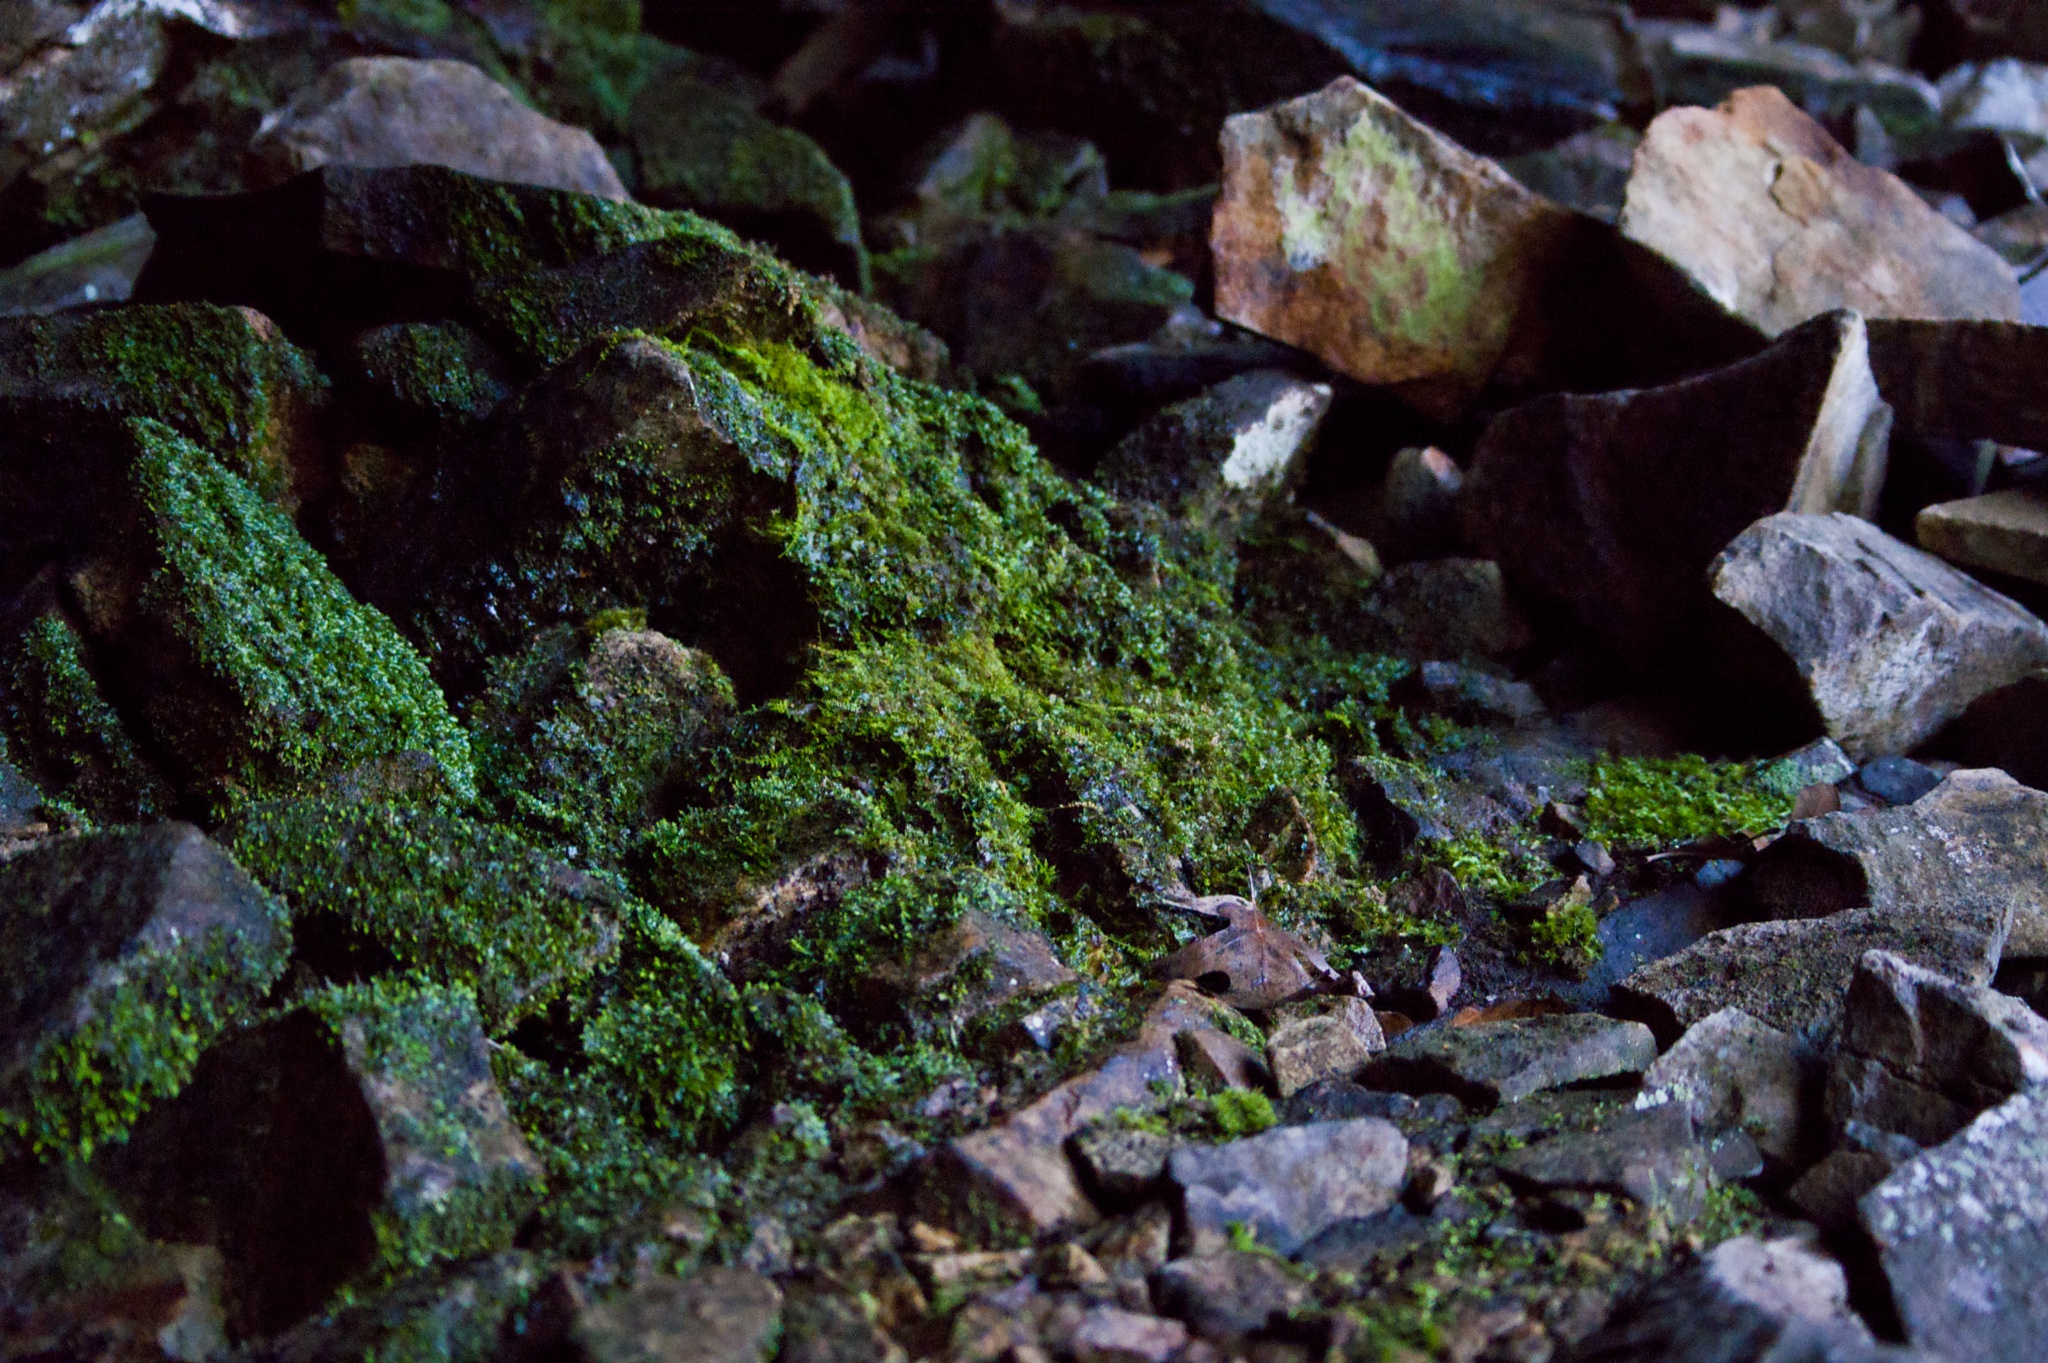 Mossy Rocks by Austin Devine